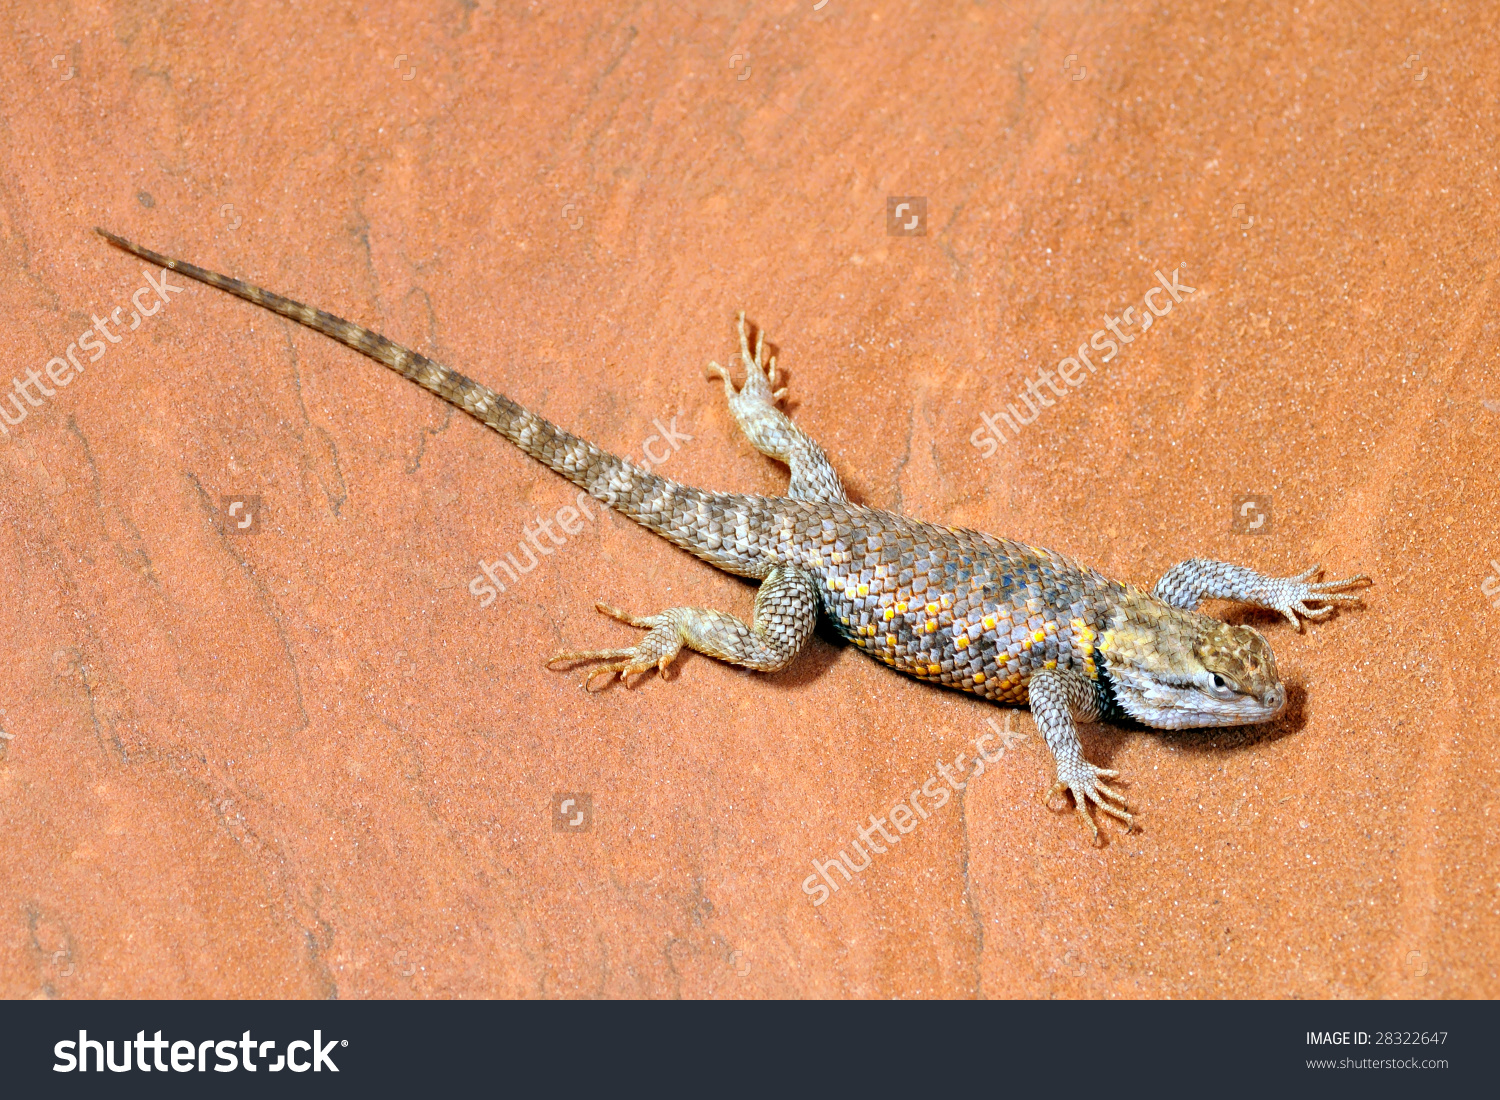 Desert Spiny Lizard (Sceloporus Magister) On Sandstone In The.